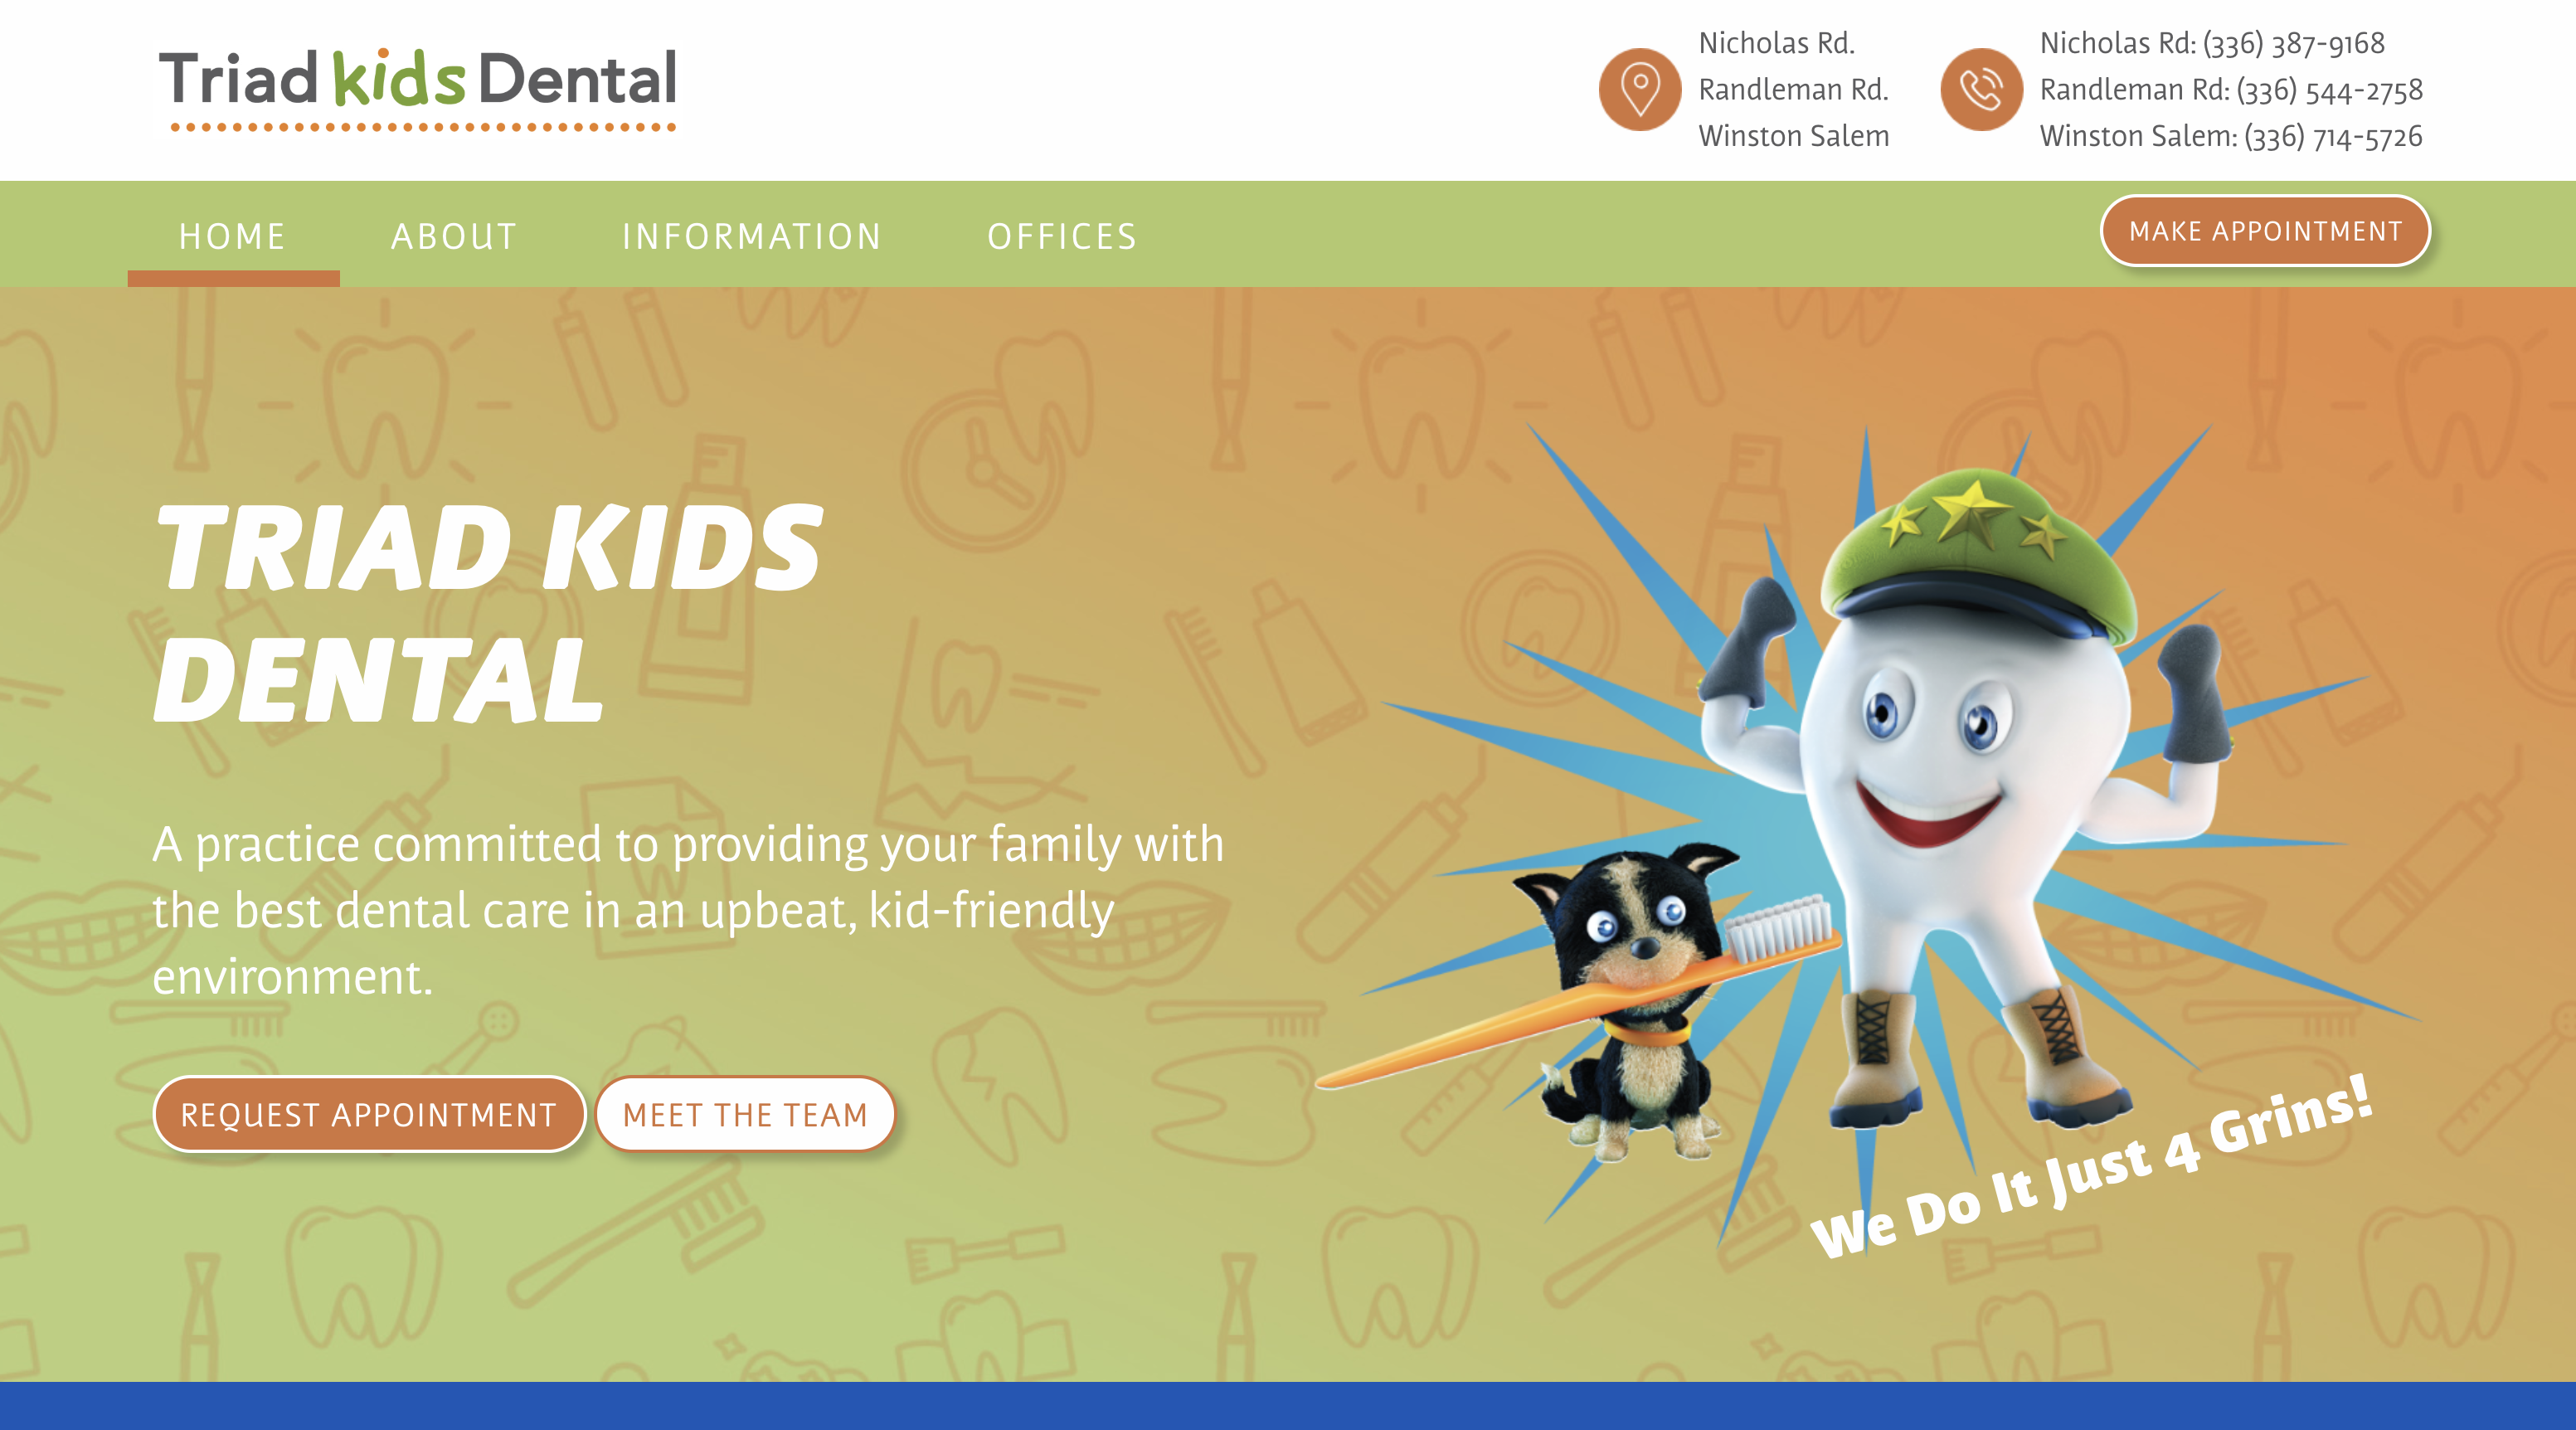 Custom Website Platform for Dental Support Organization image